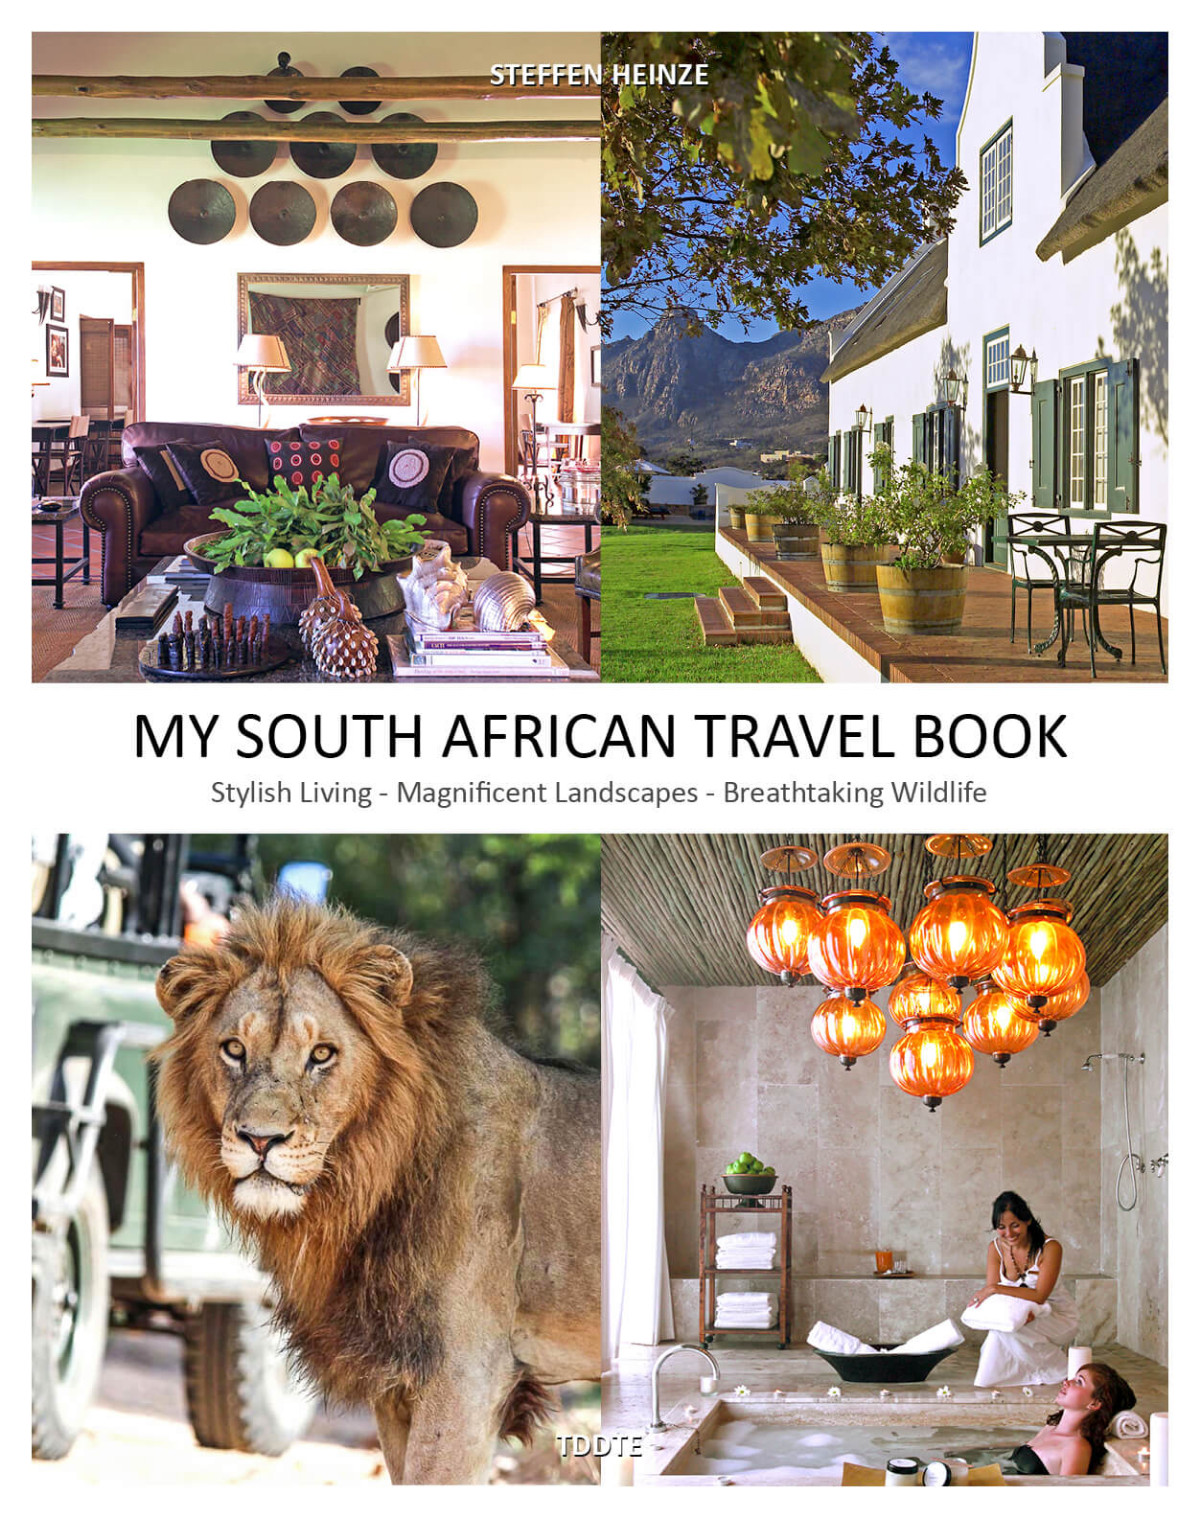 MY SOUTH AFRICAN TRAVEL BOOK